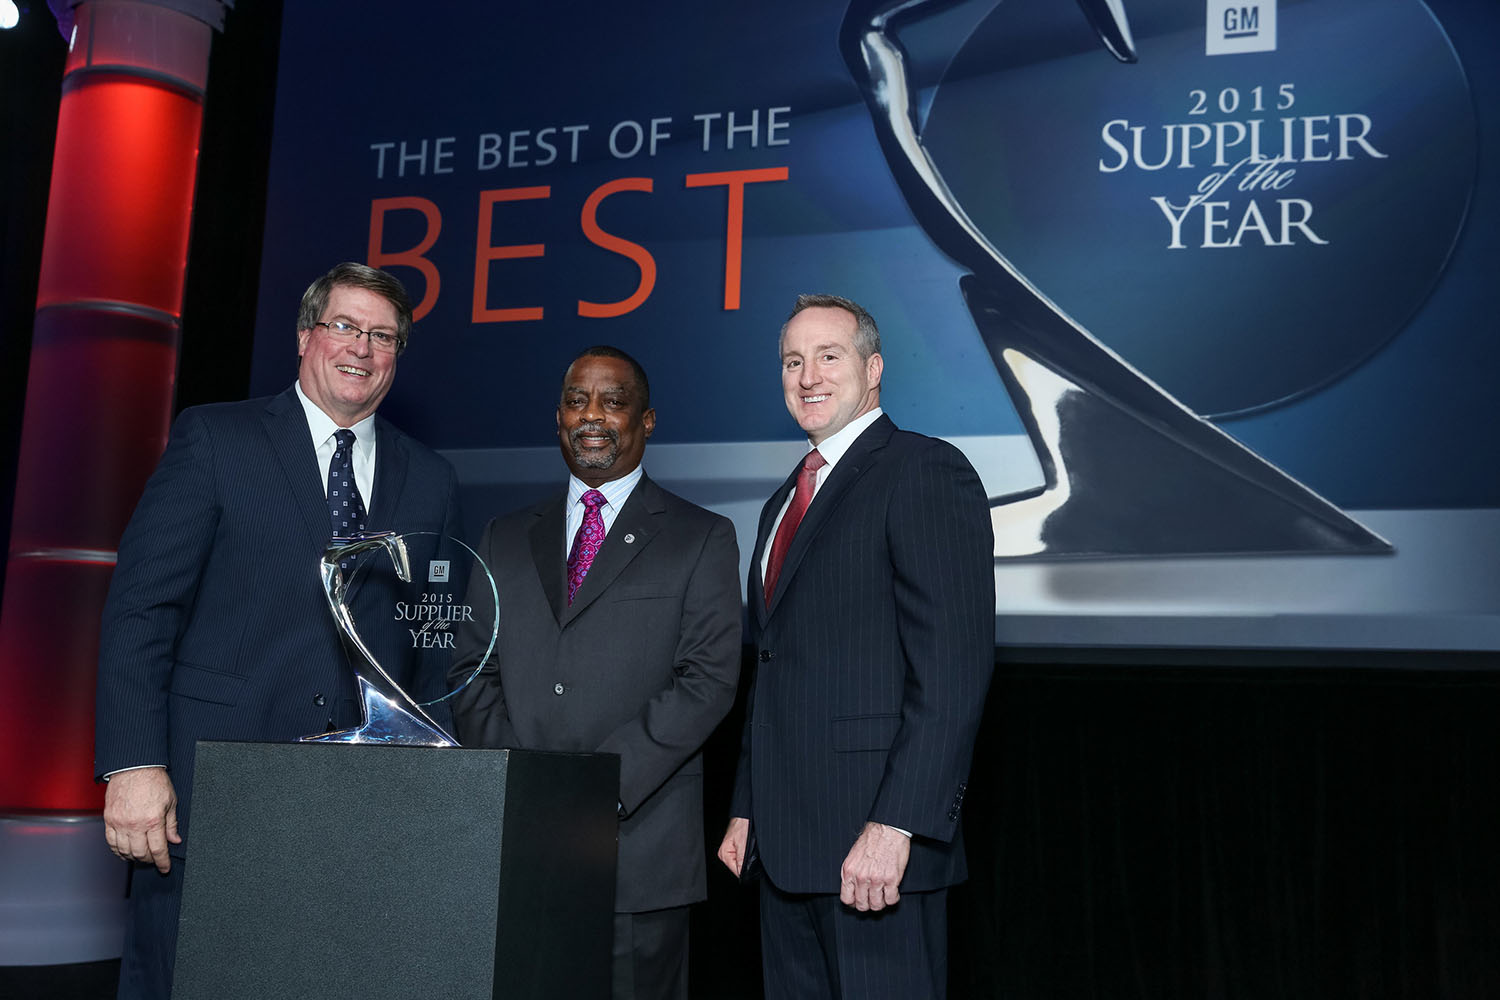 2017 Gm Supplier Of The Year Winner